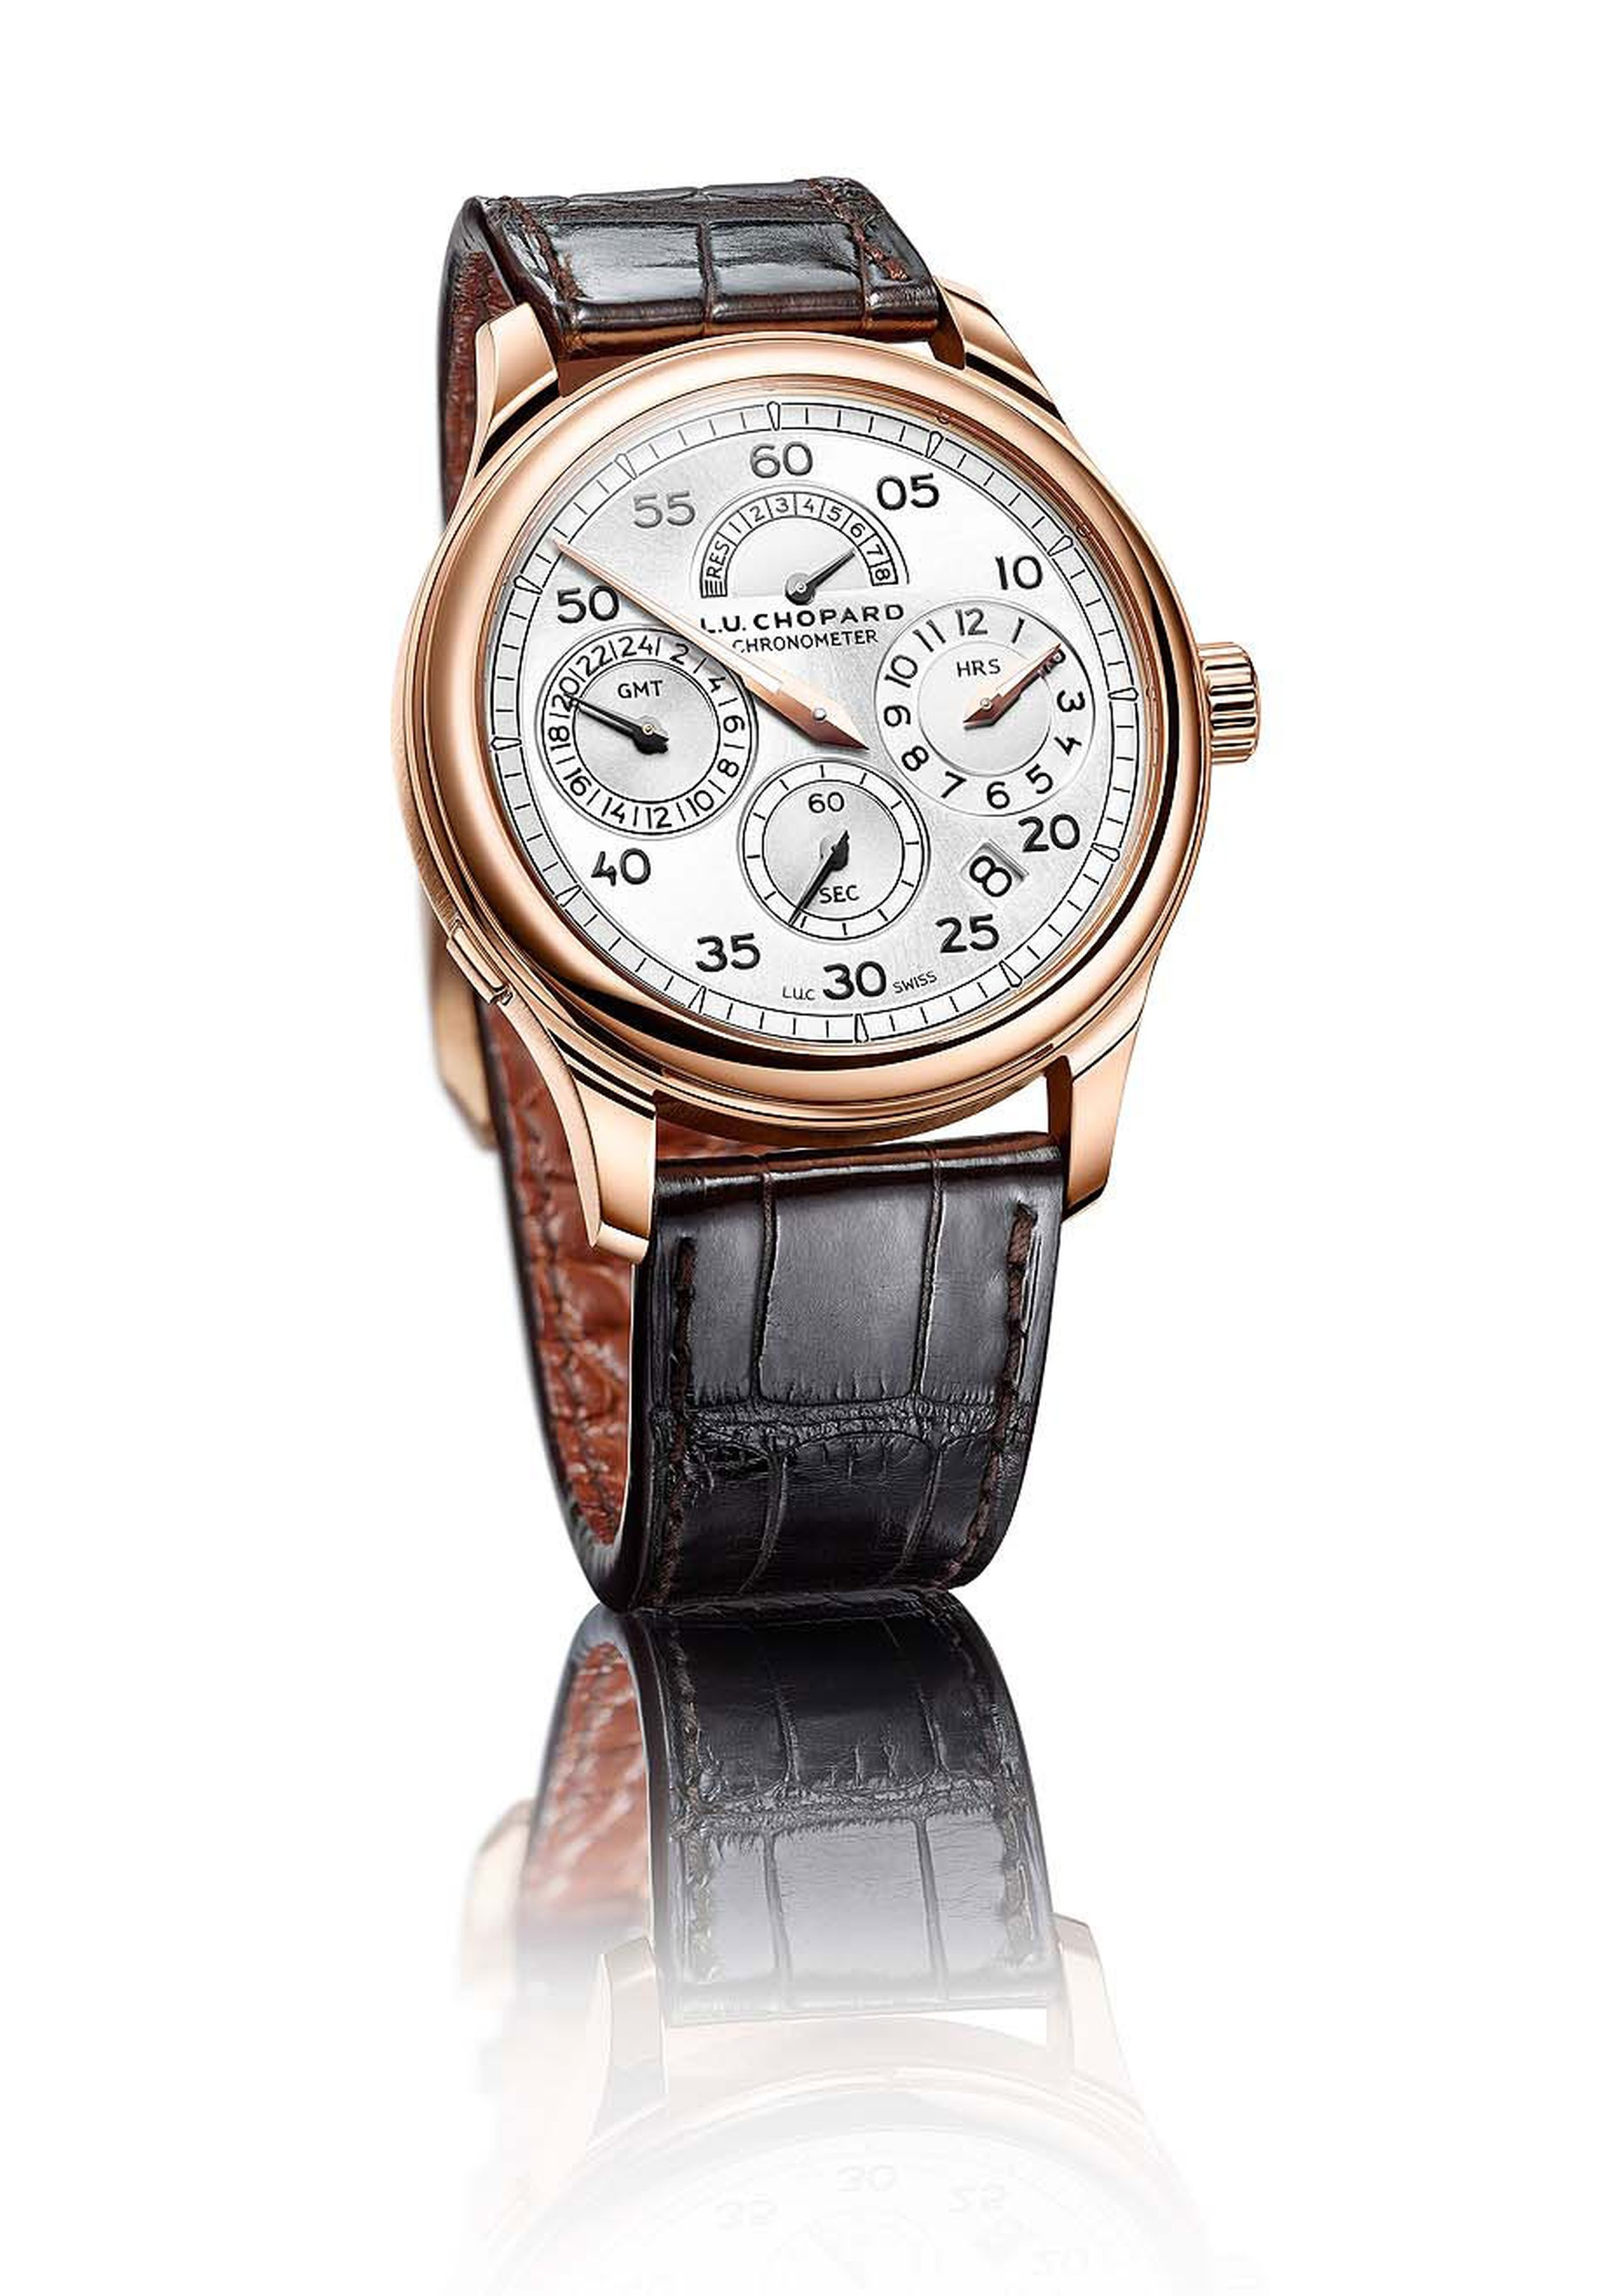 Chopard watches has revisited the regulator clock with its new L.U.C Regulator model in rose gold. The central minute track circles the perimeter of the dial, and the hours counter has been placed strategically at 3 o'clock.